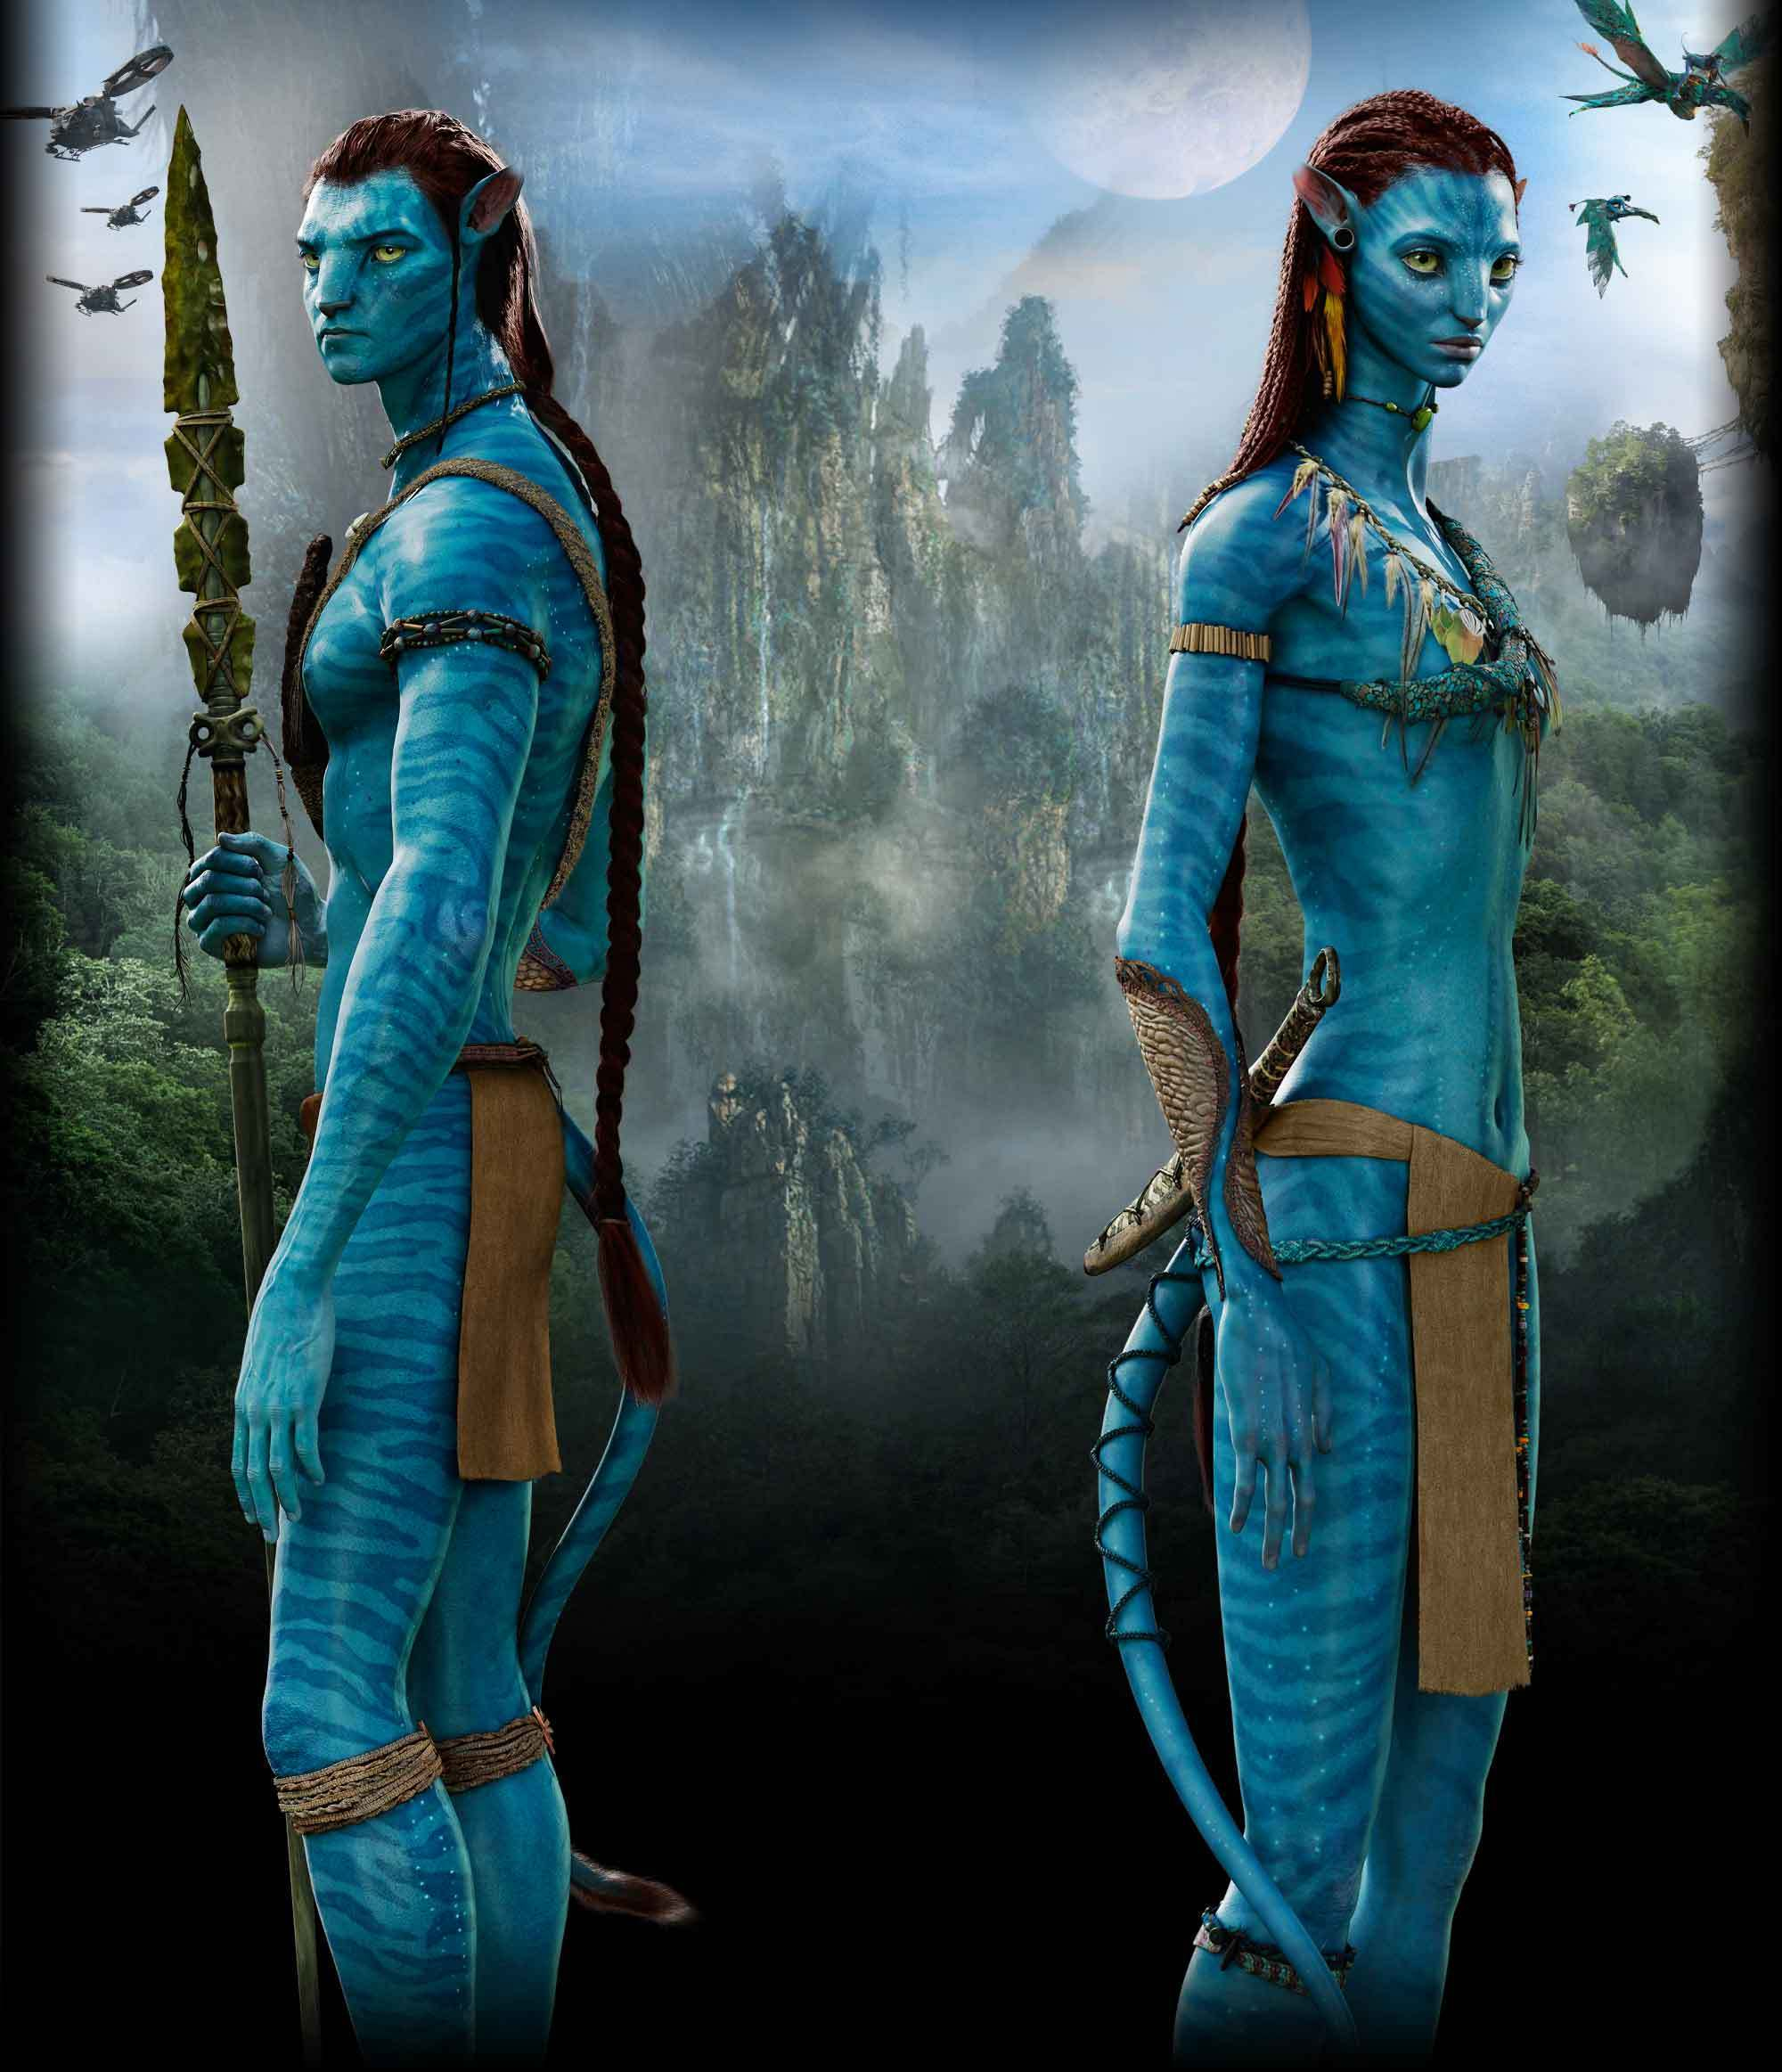 Avatar images AvAtAr HD wallpaper and background photos  19954085